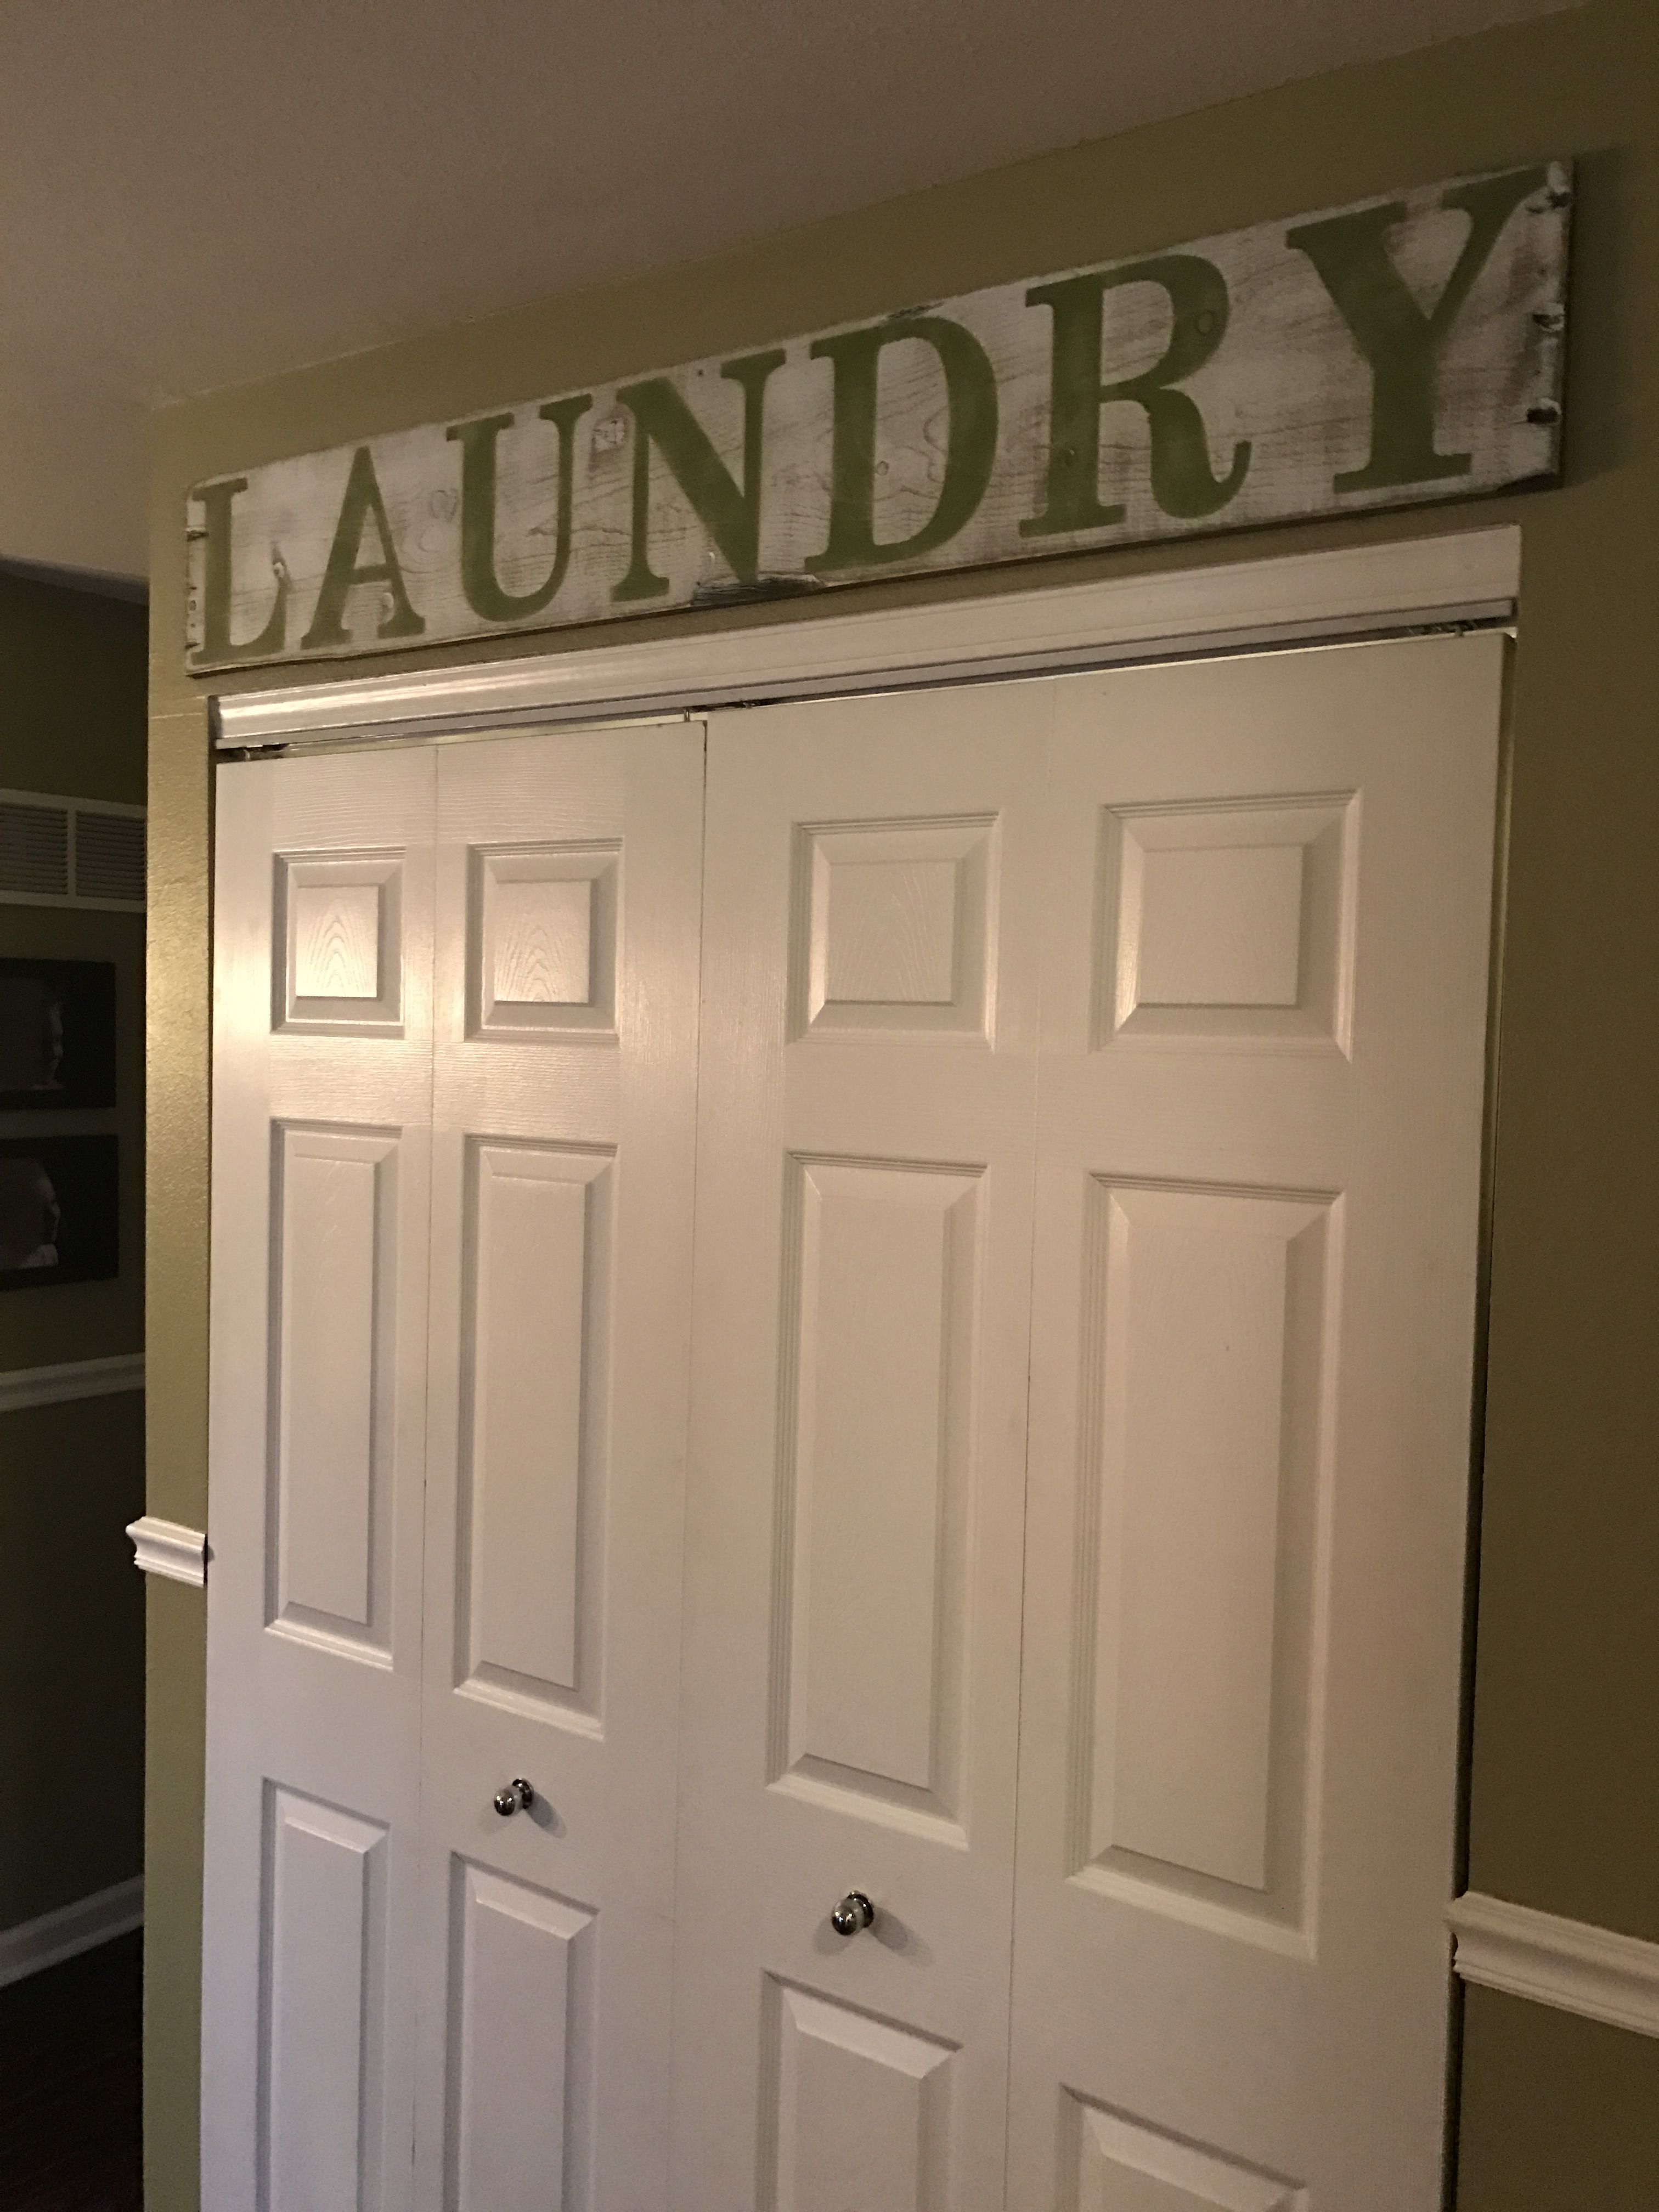 Rustic Wood Laundry Sign With Images Laundry Room Decor Laundry Decor Laundry Signs